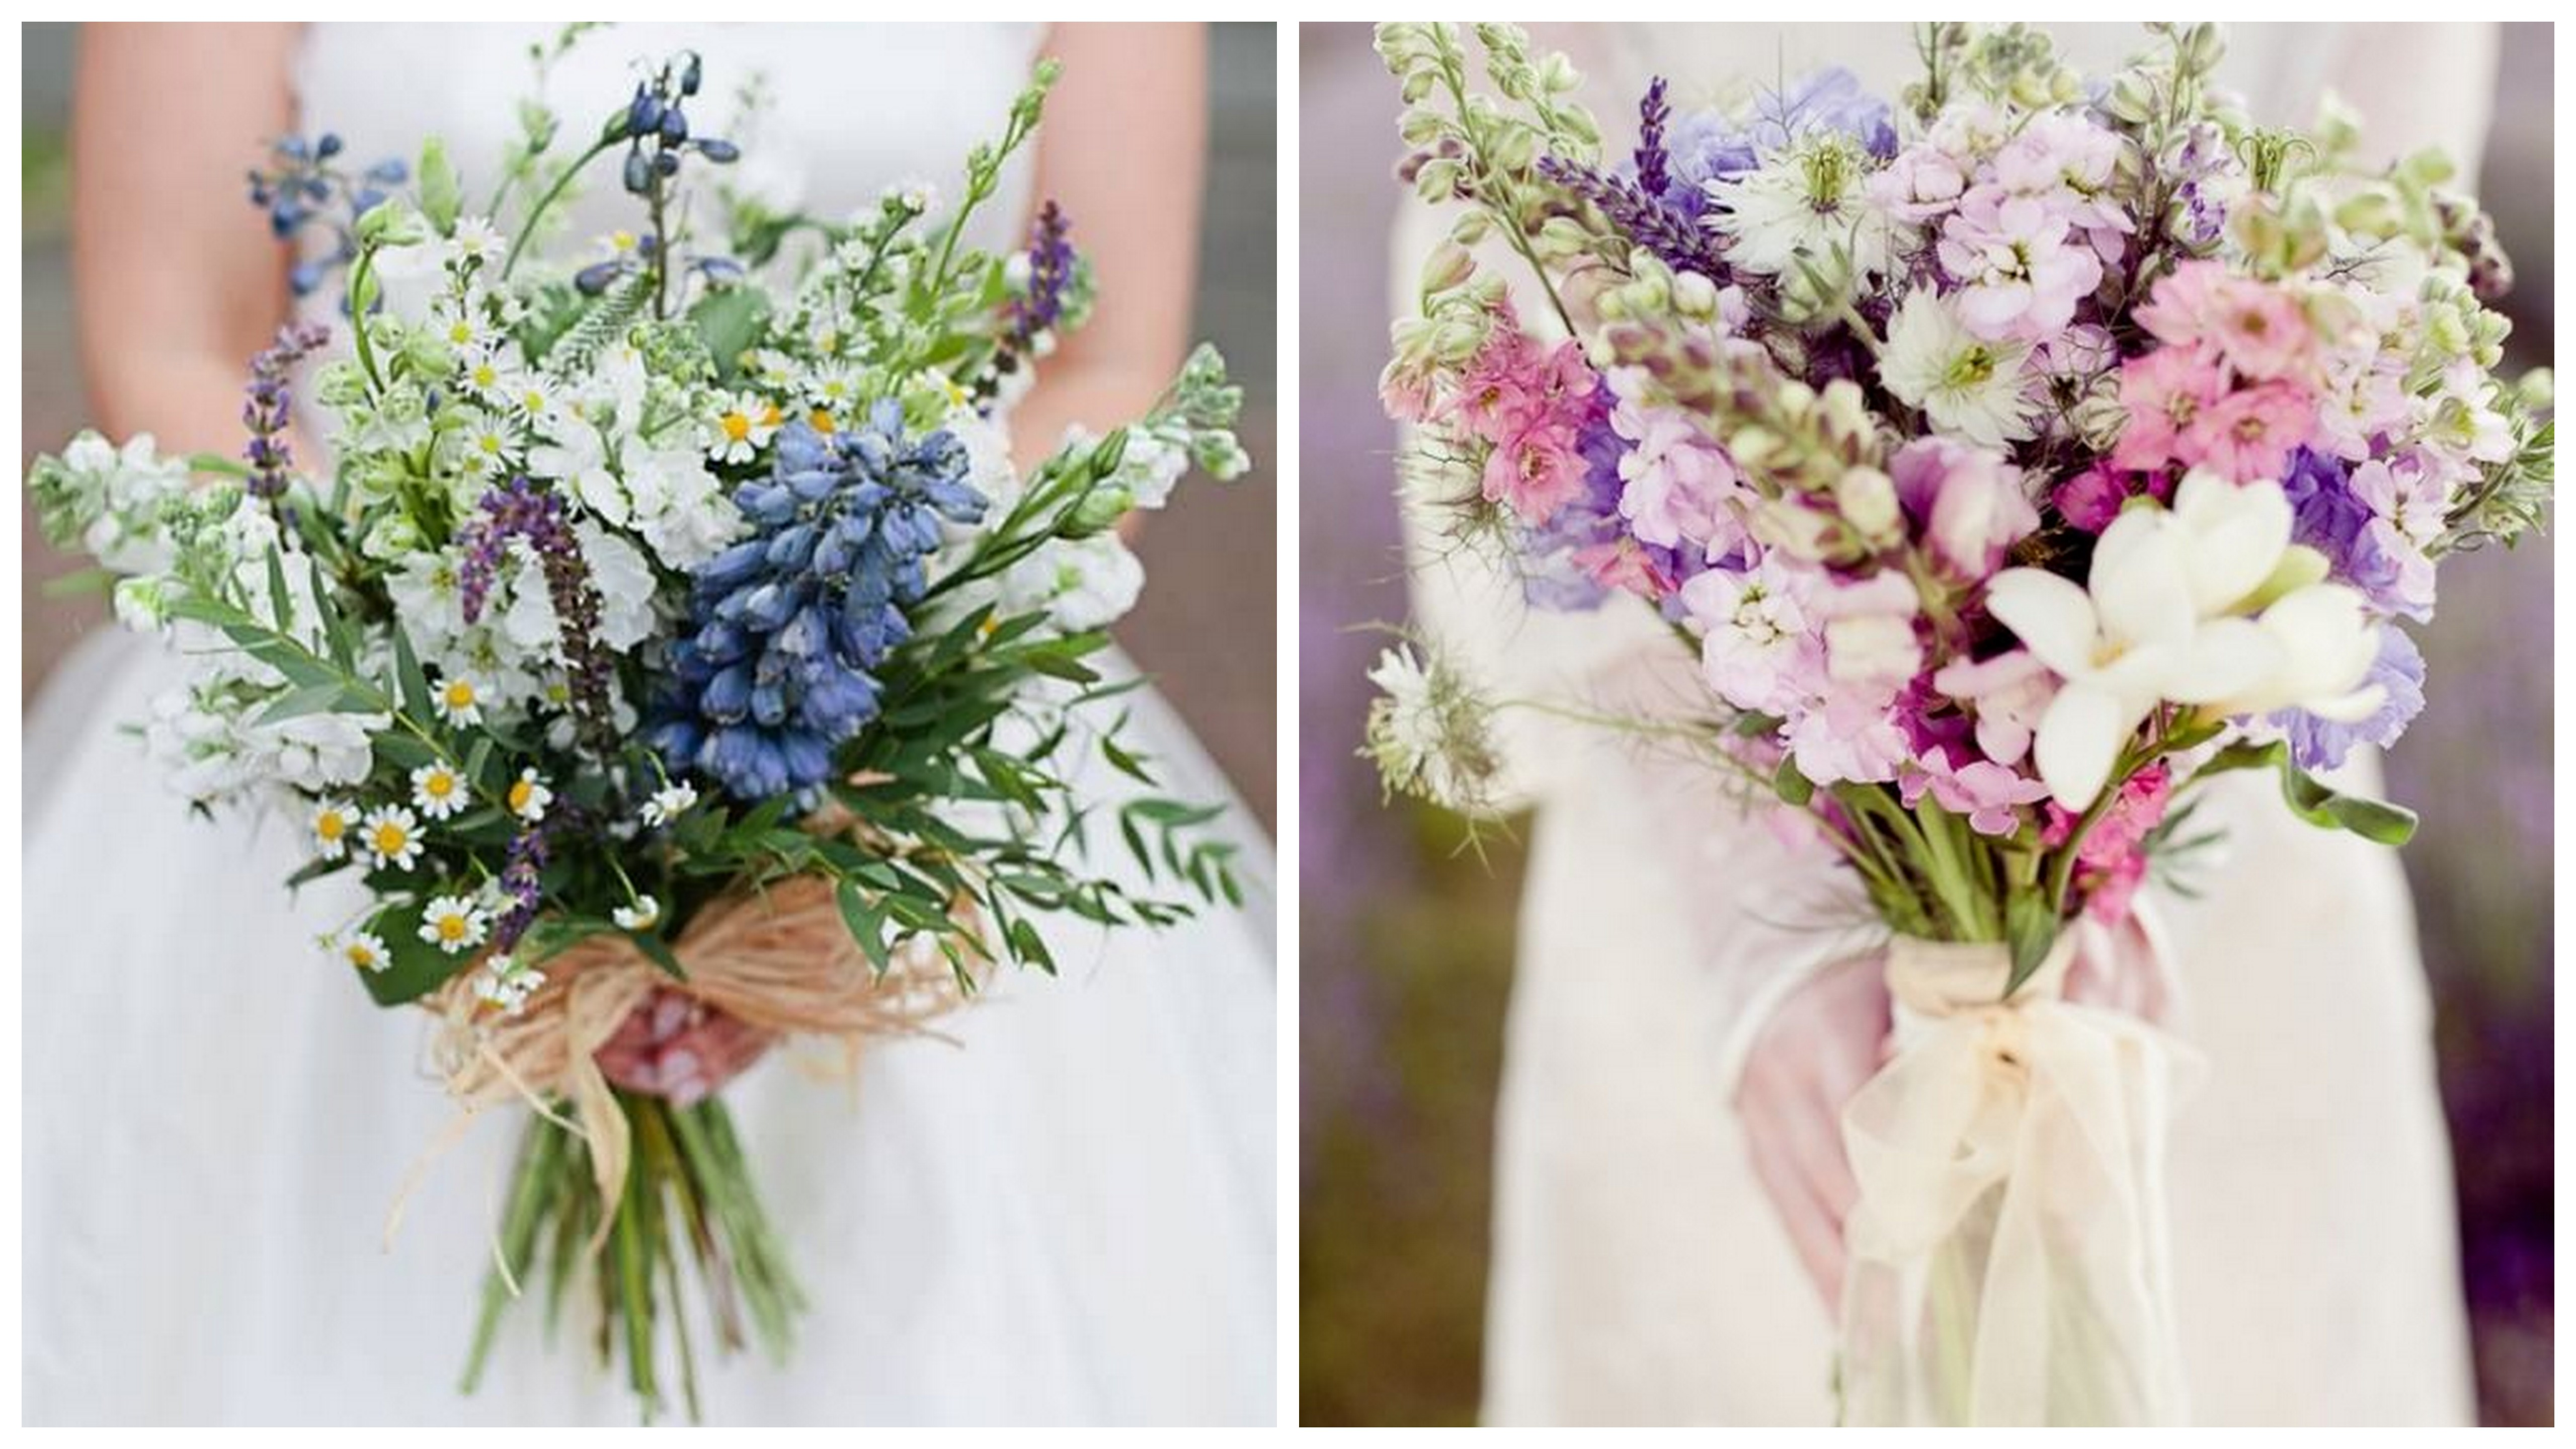 Trend Alert: 4 Stunning Styles For Your Wedding Bouquet